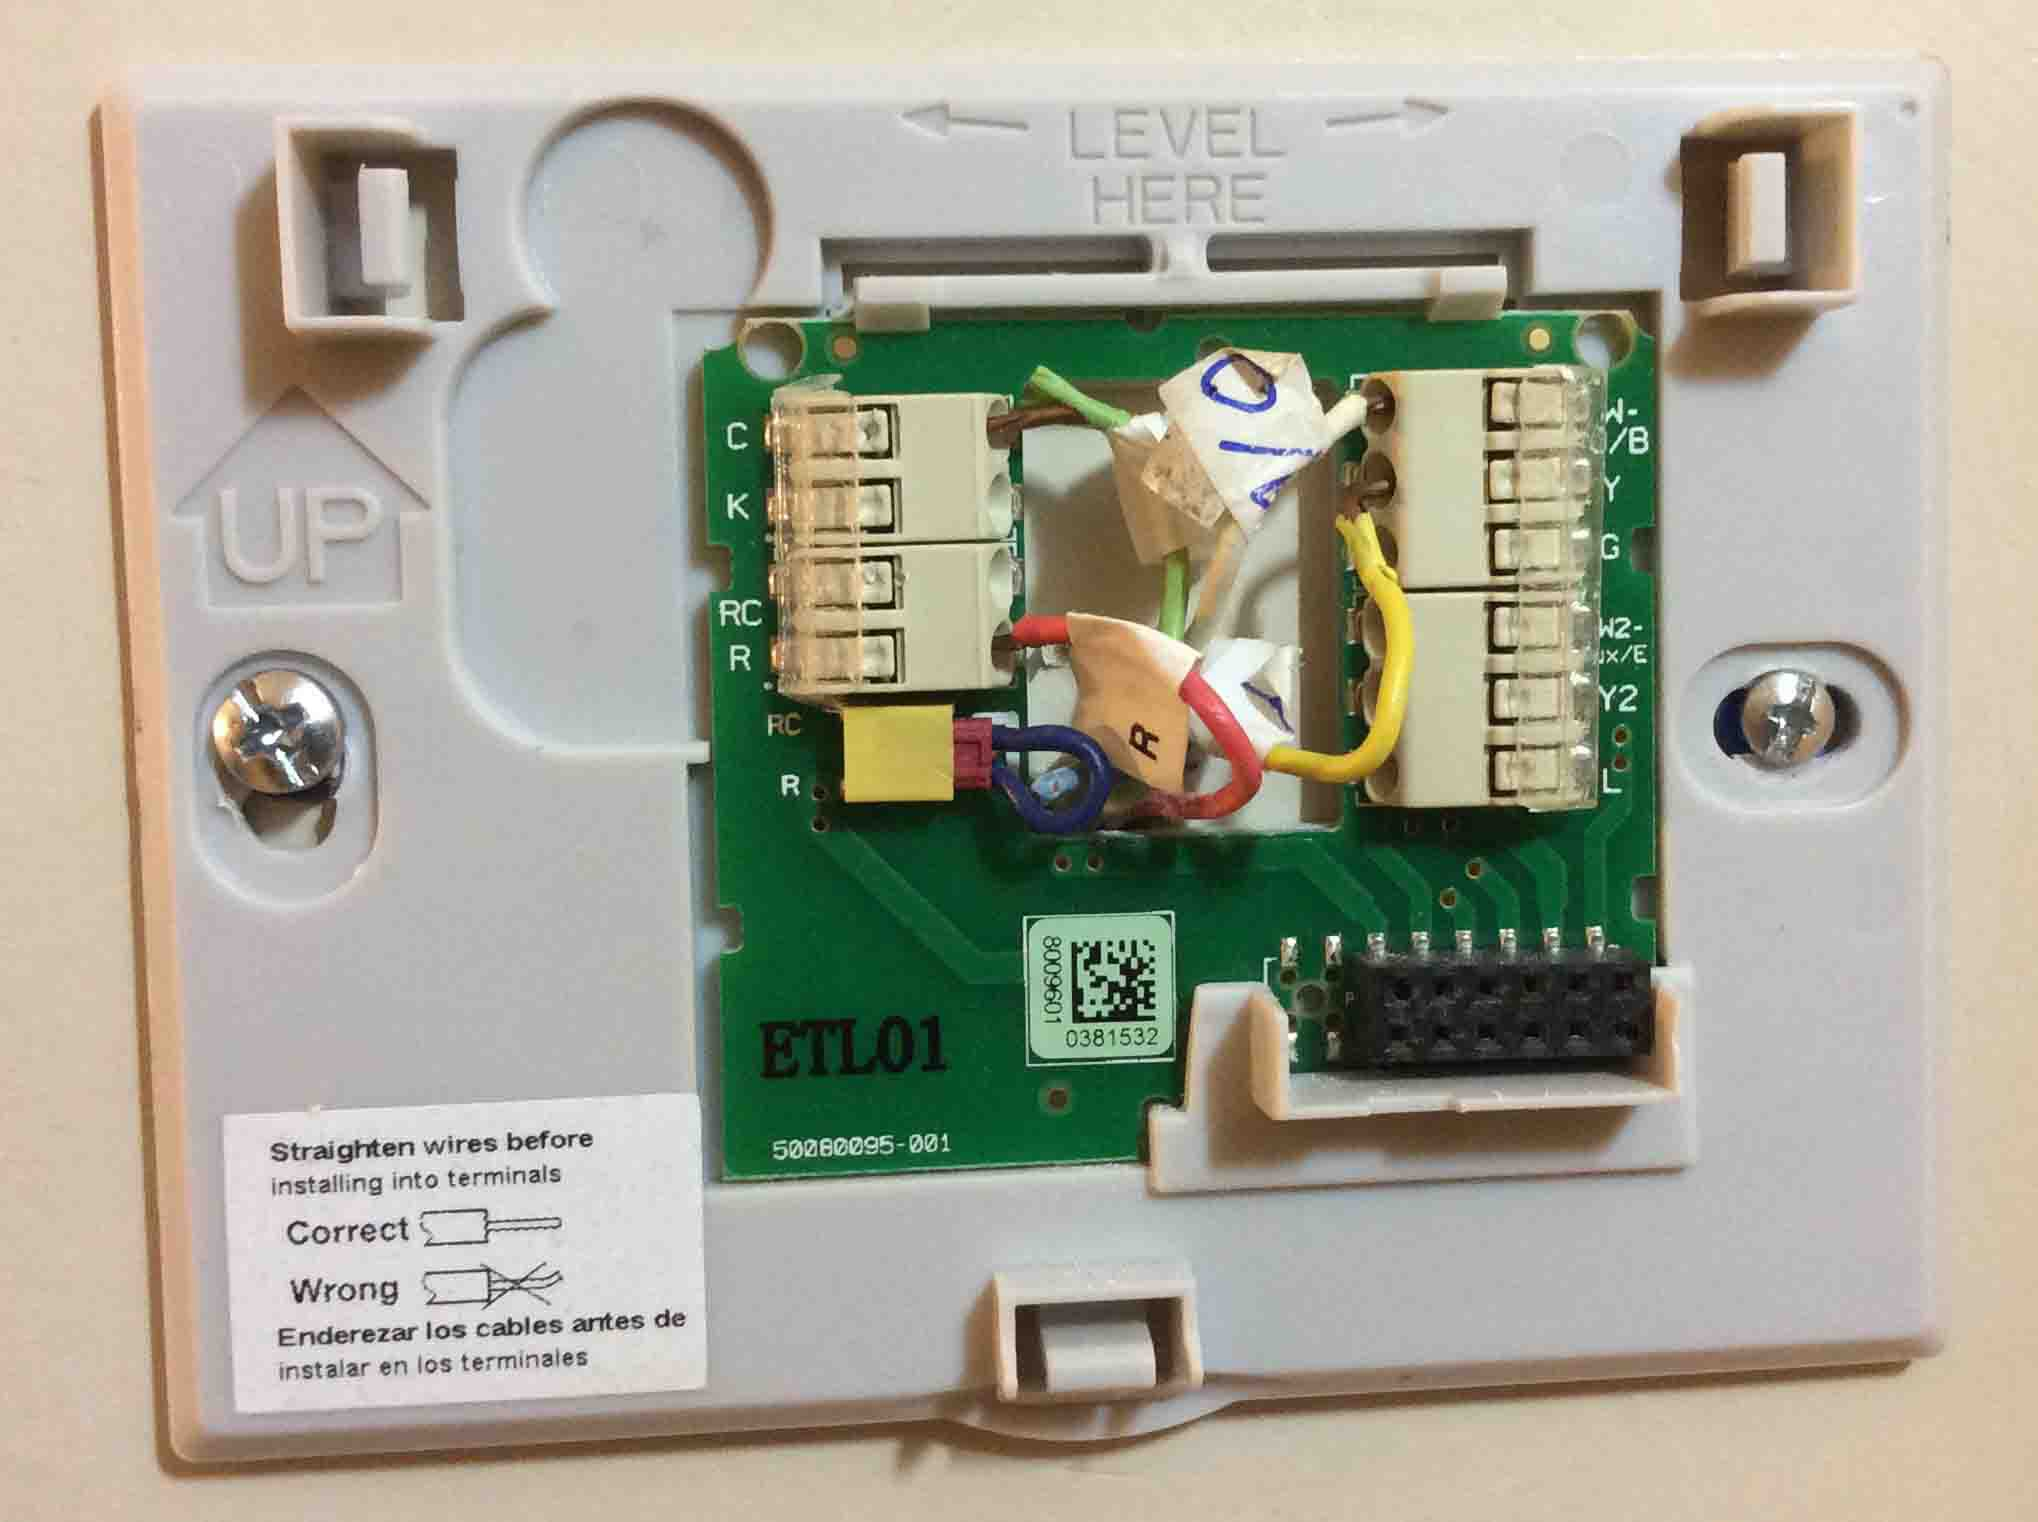 honeywell 9000 thermostat wiring diagram Collection-Honeywell Wifi thermostat Wiring Diagram Best Deluxe Non Guide to thermostat Wiring Color Code Making 13-d